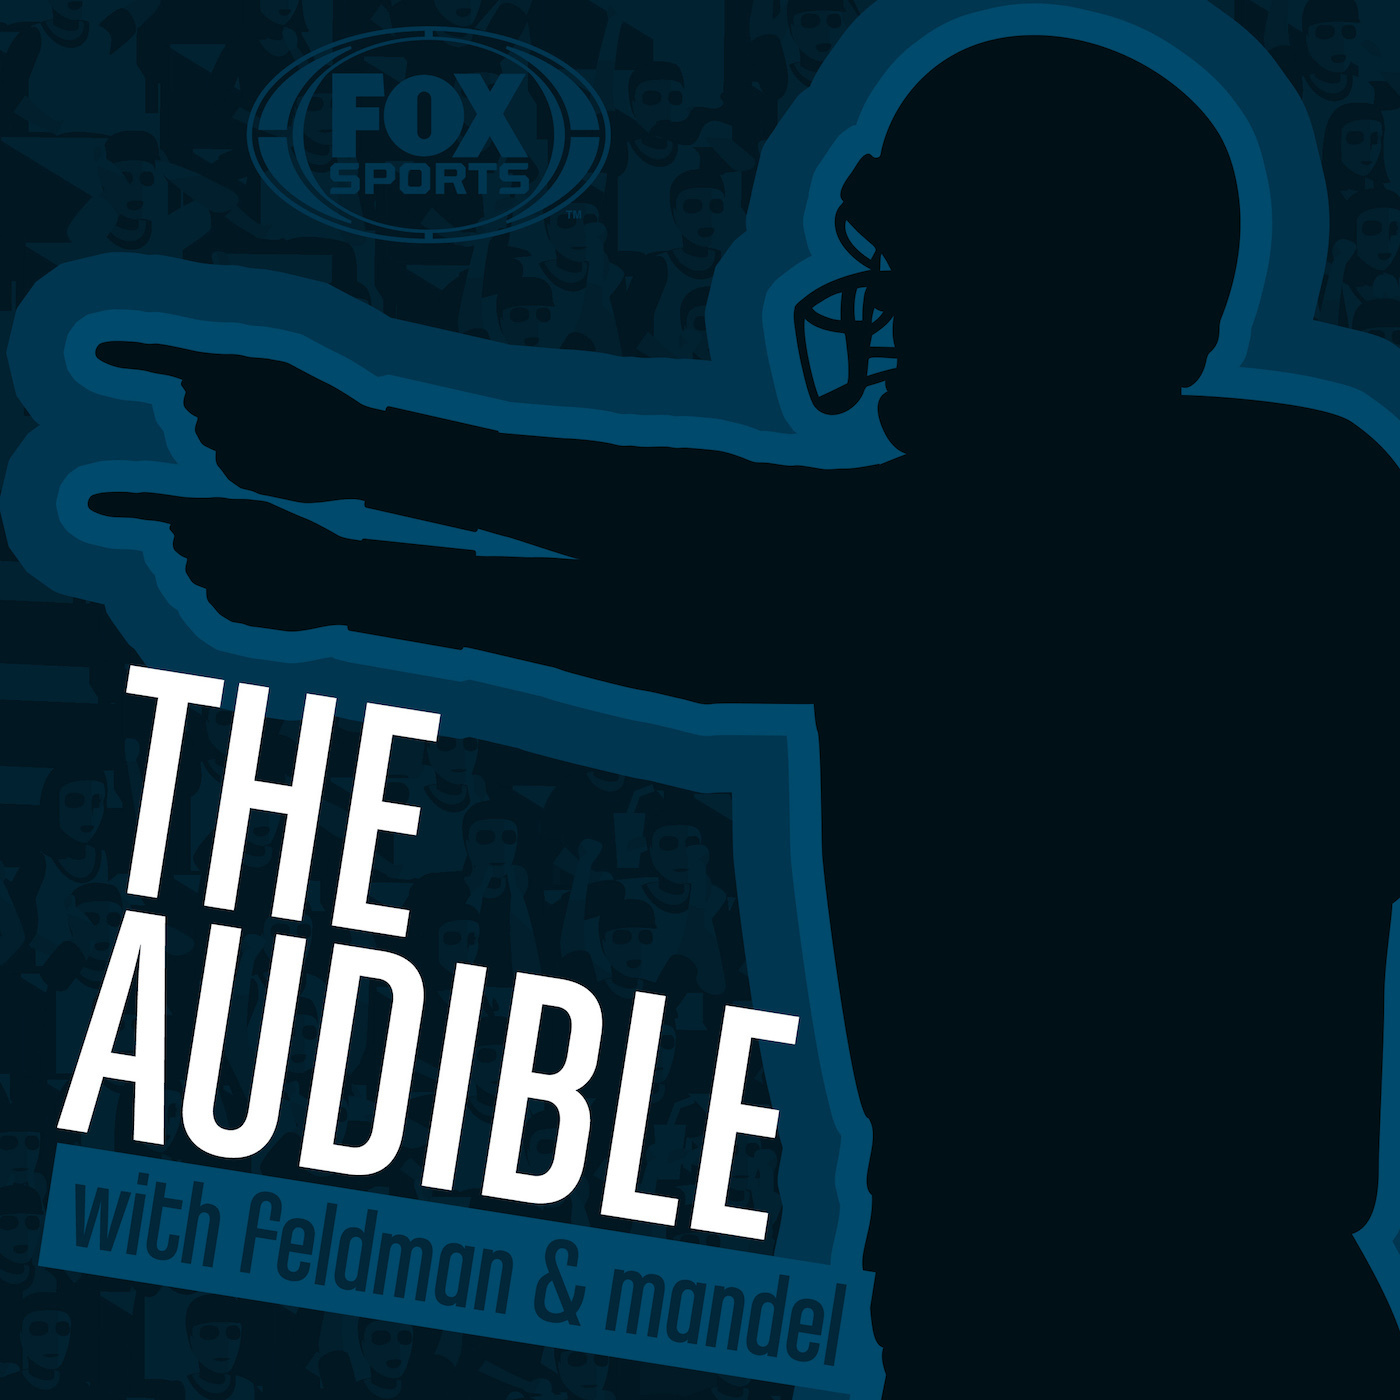 The Audible